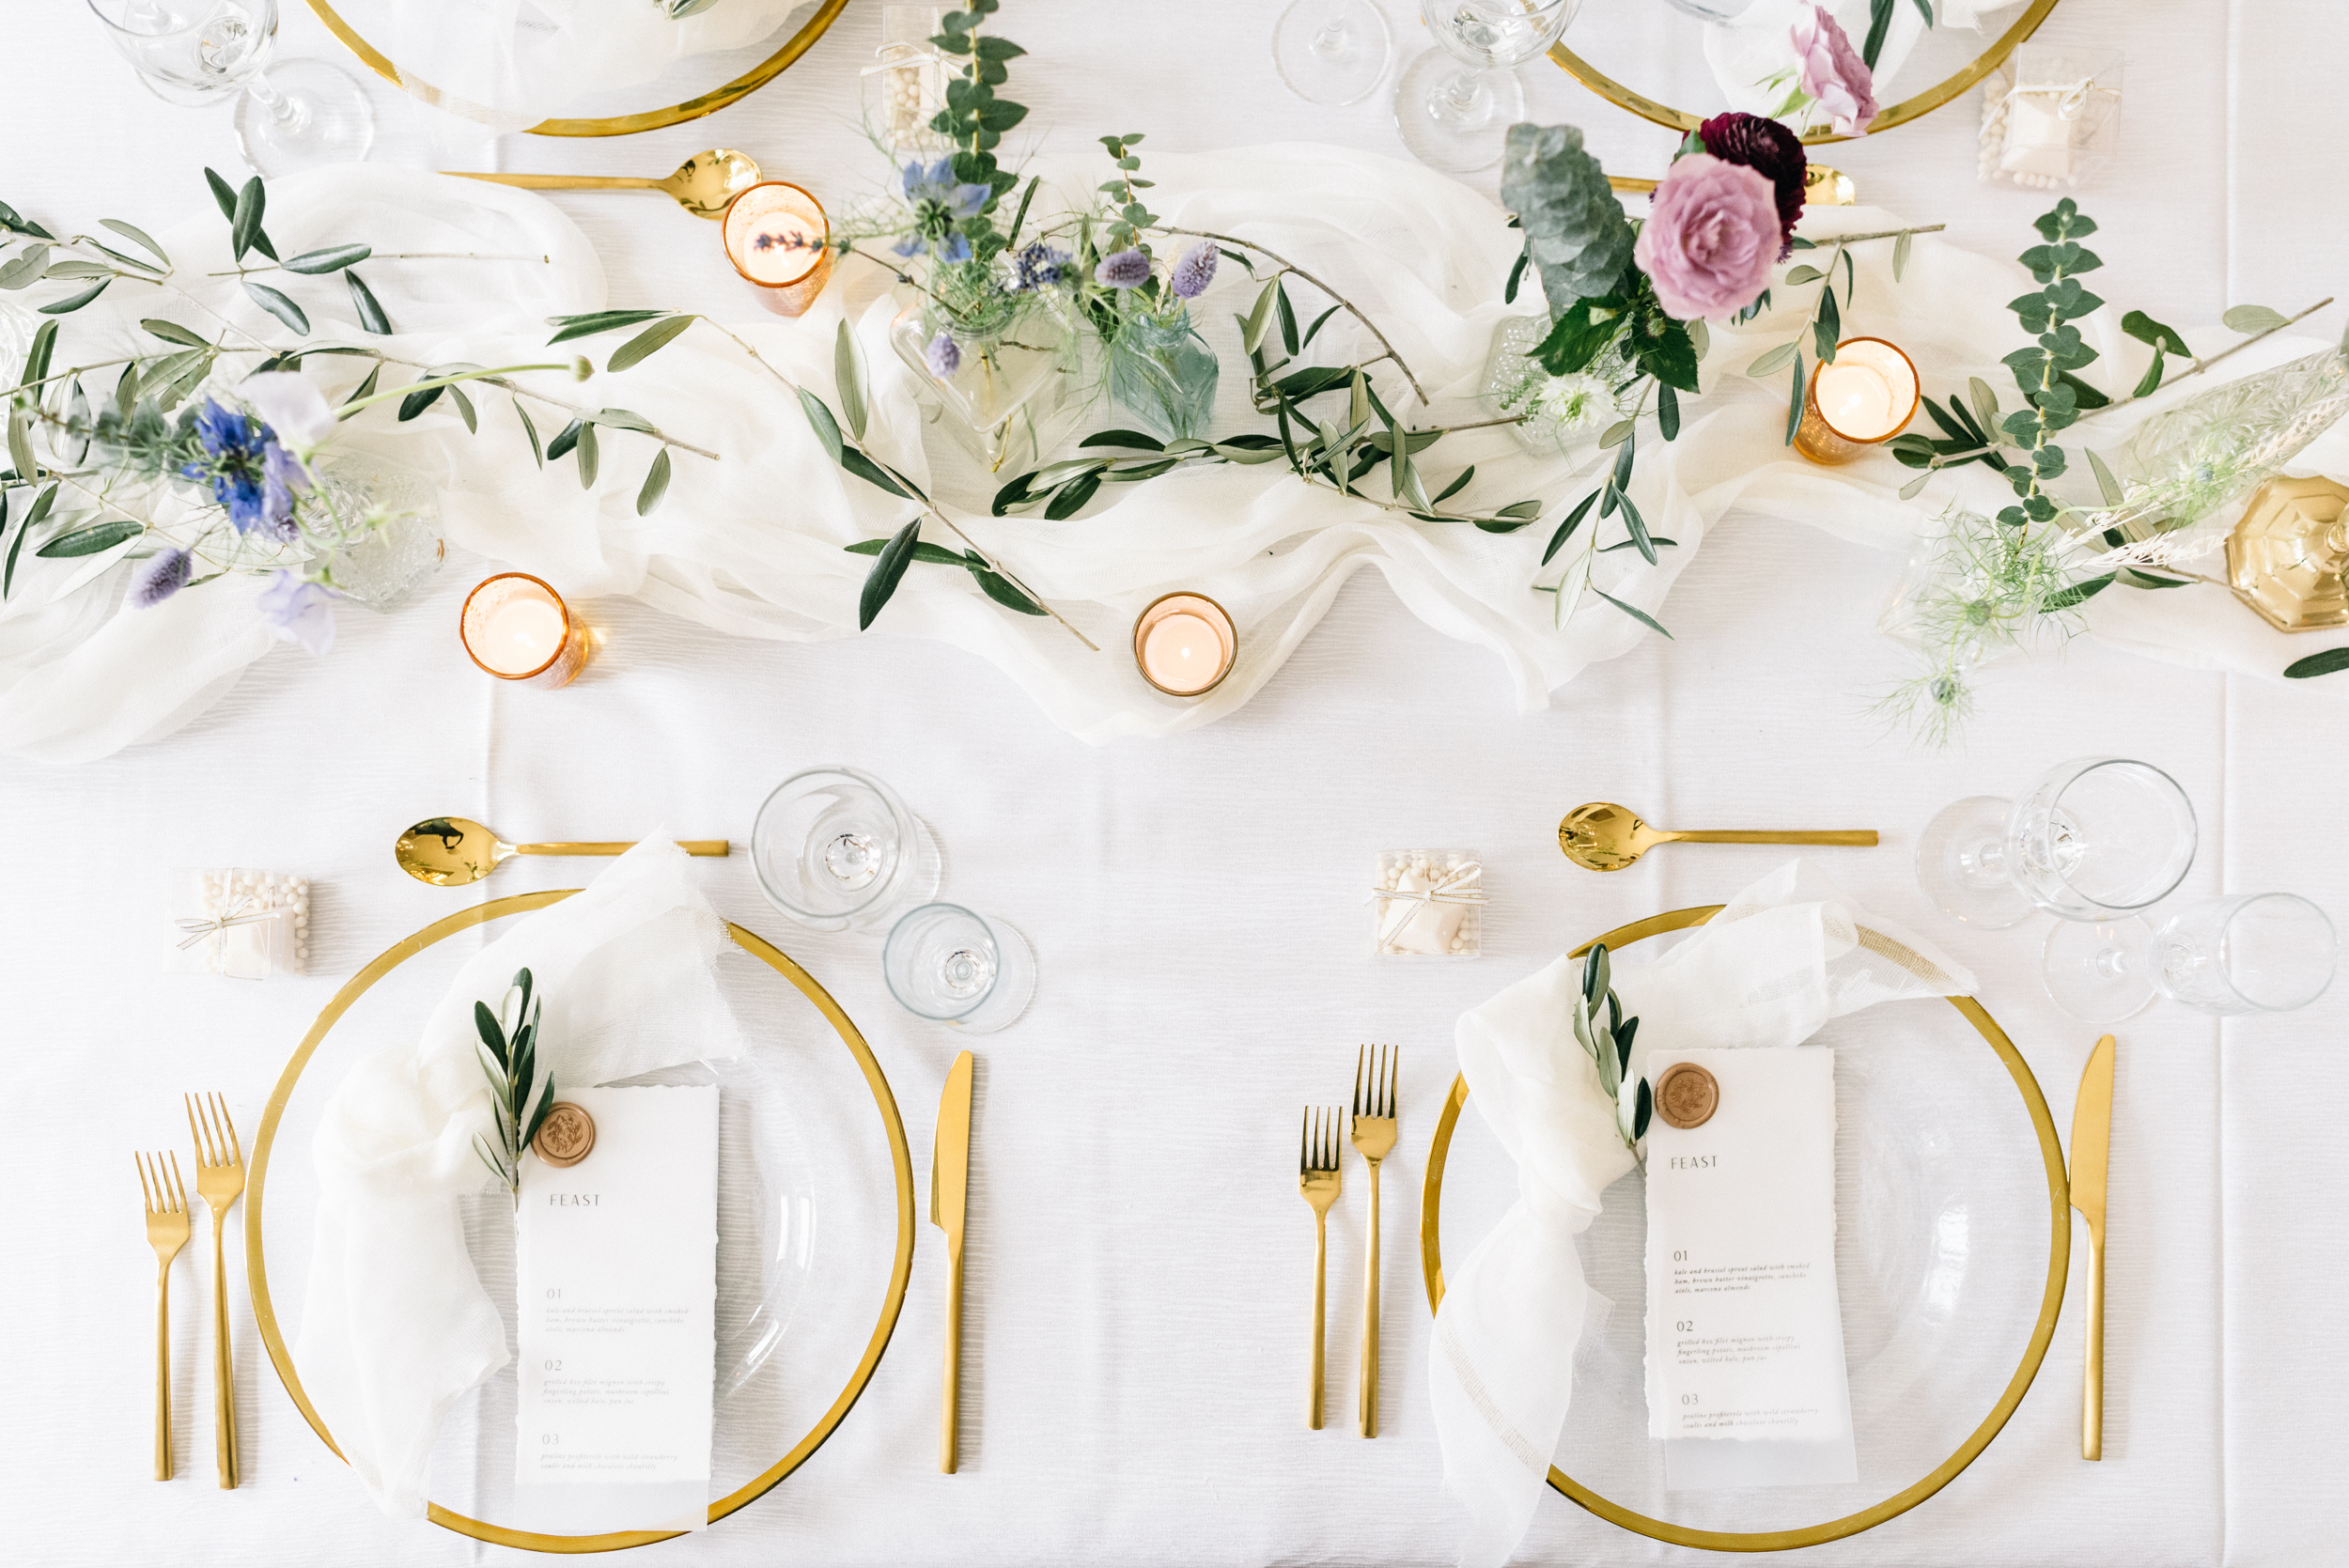 styled-tablescapes-73.jpg